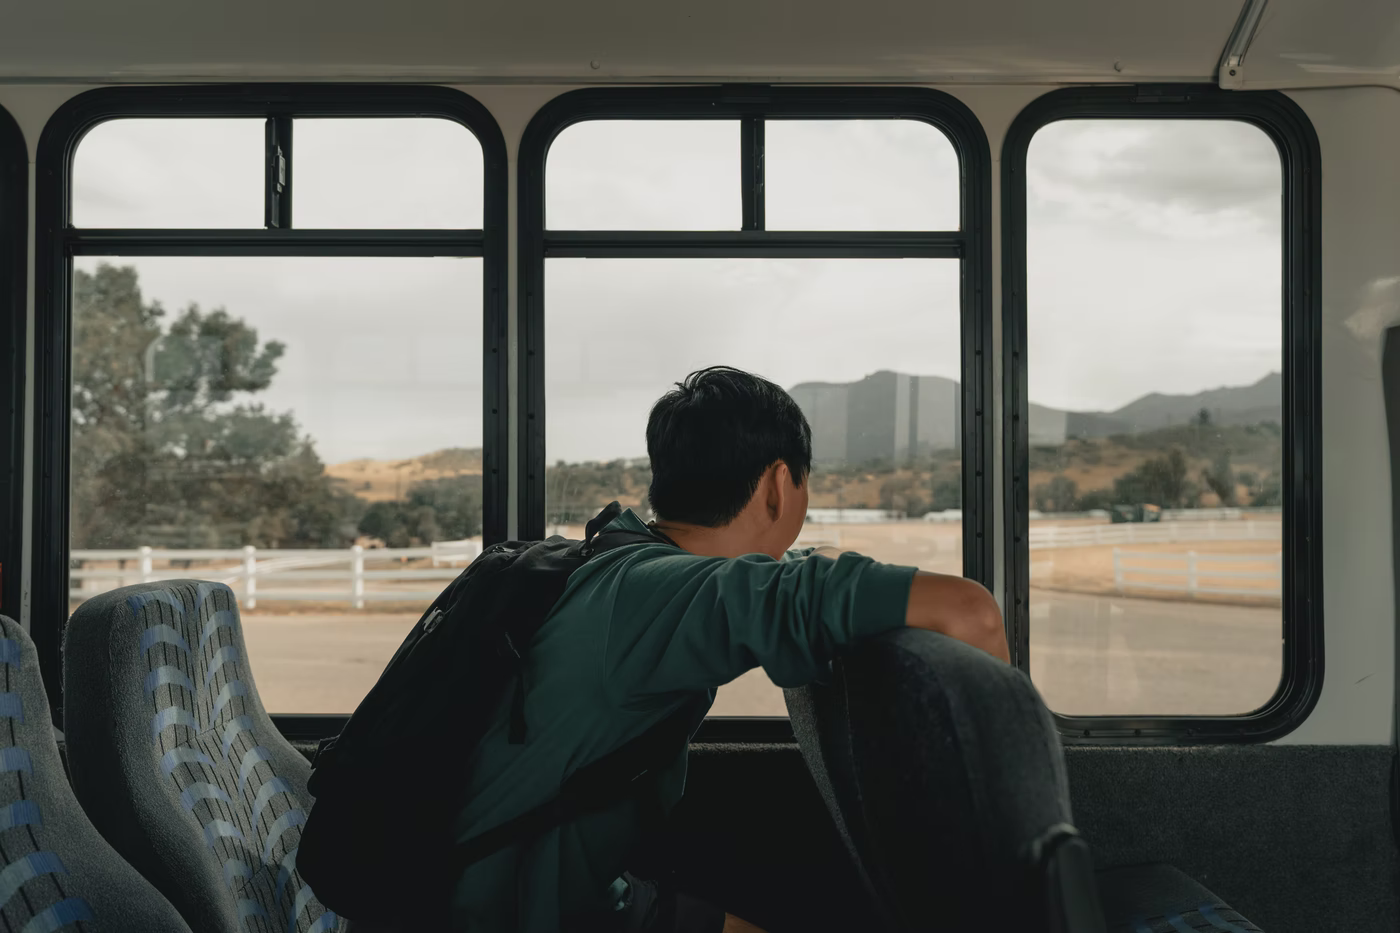 How To Make Your Traveling Time More Entertaining And Fun